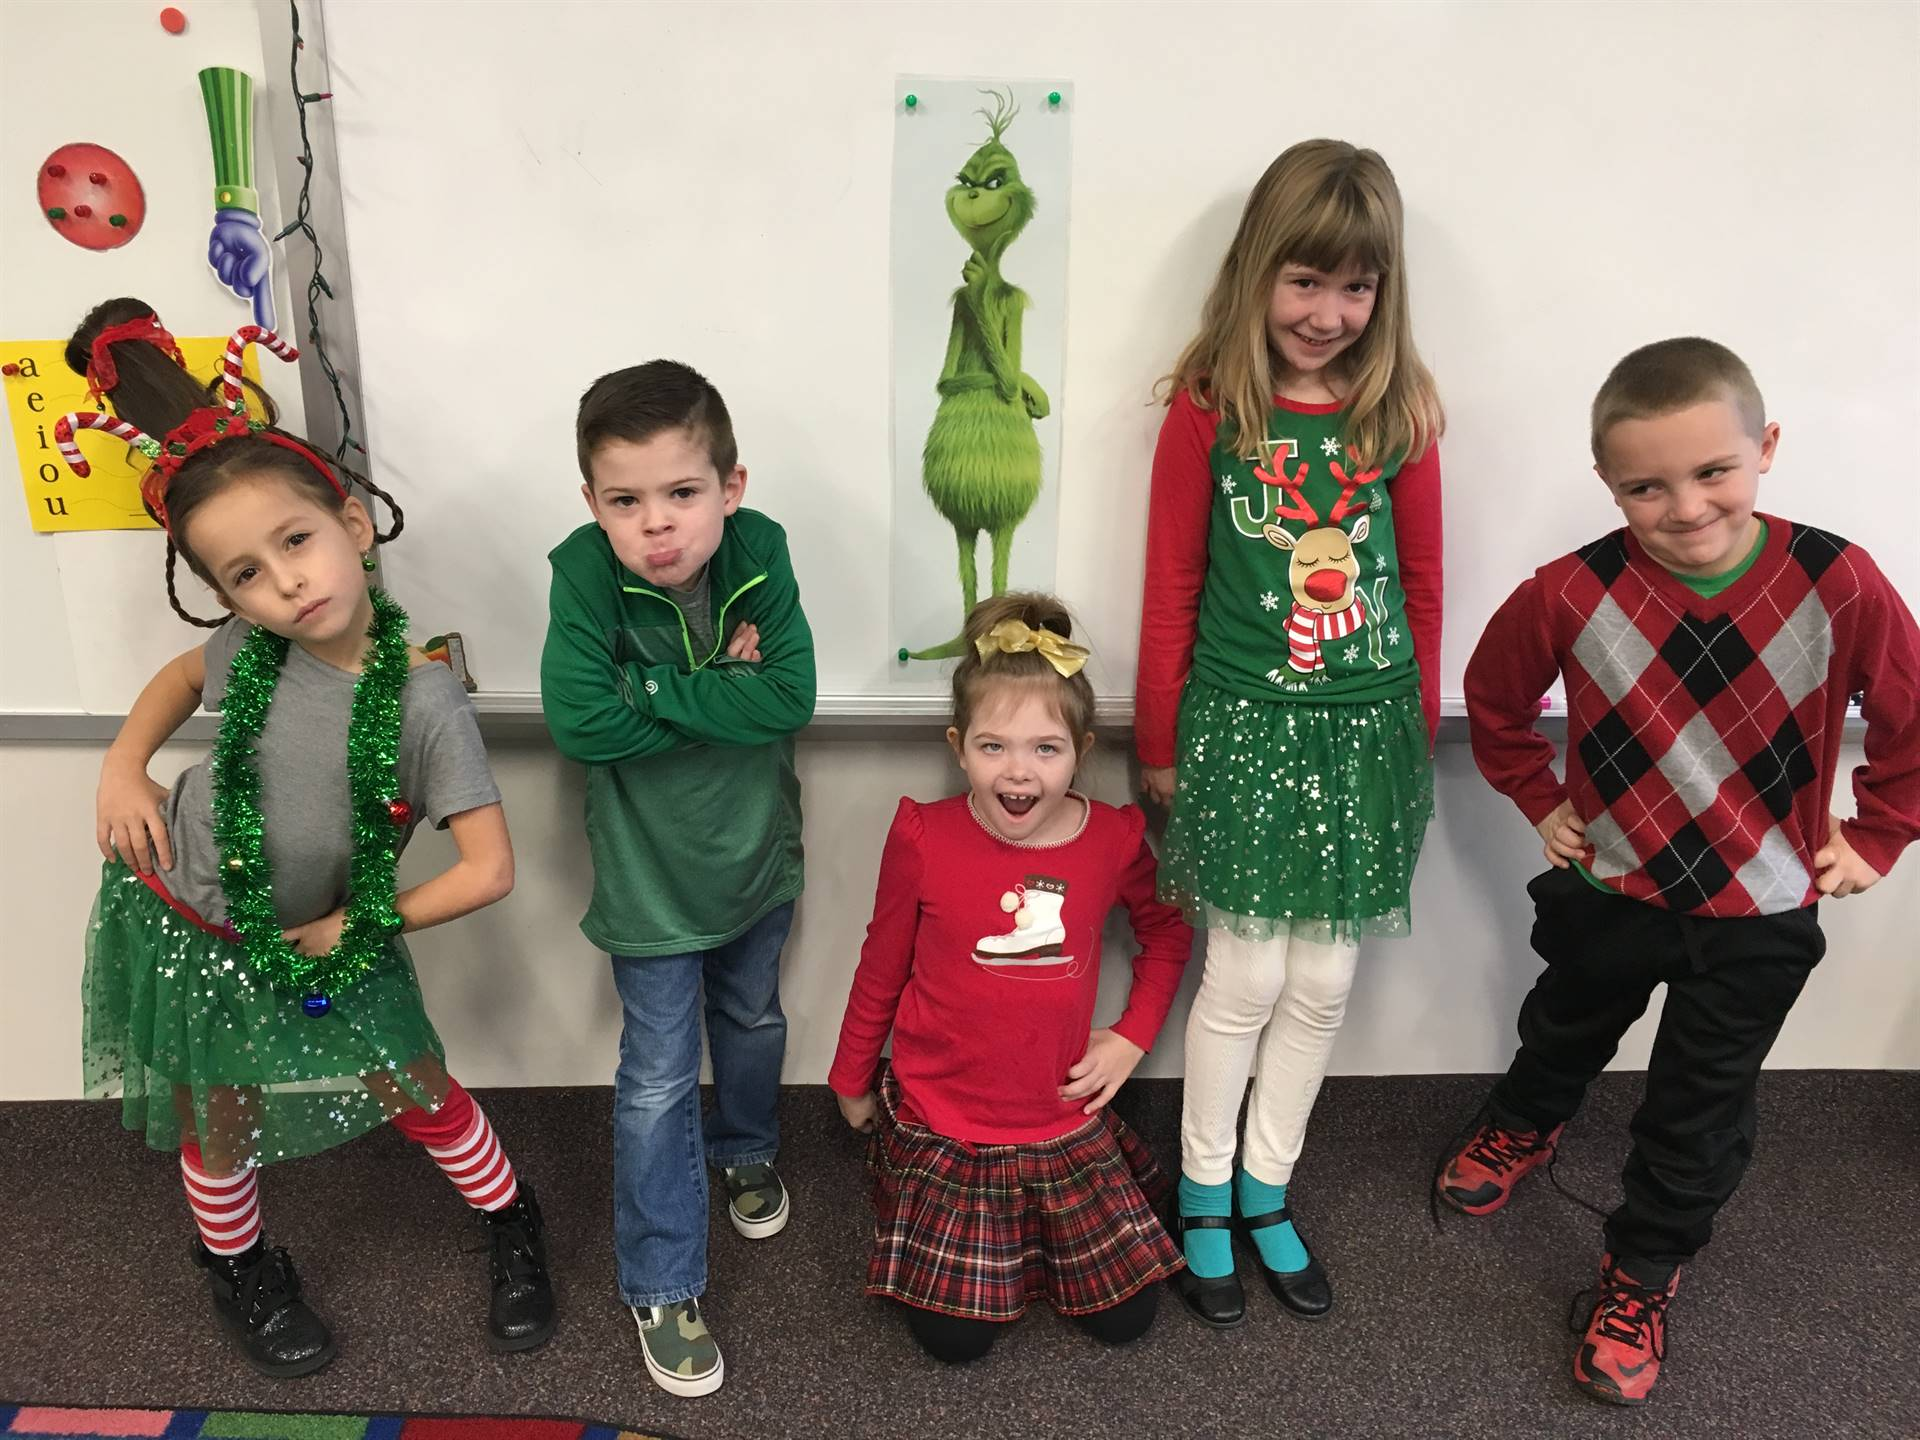 Five first graders making faces like the Grinch